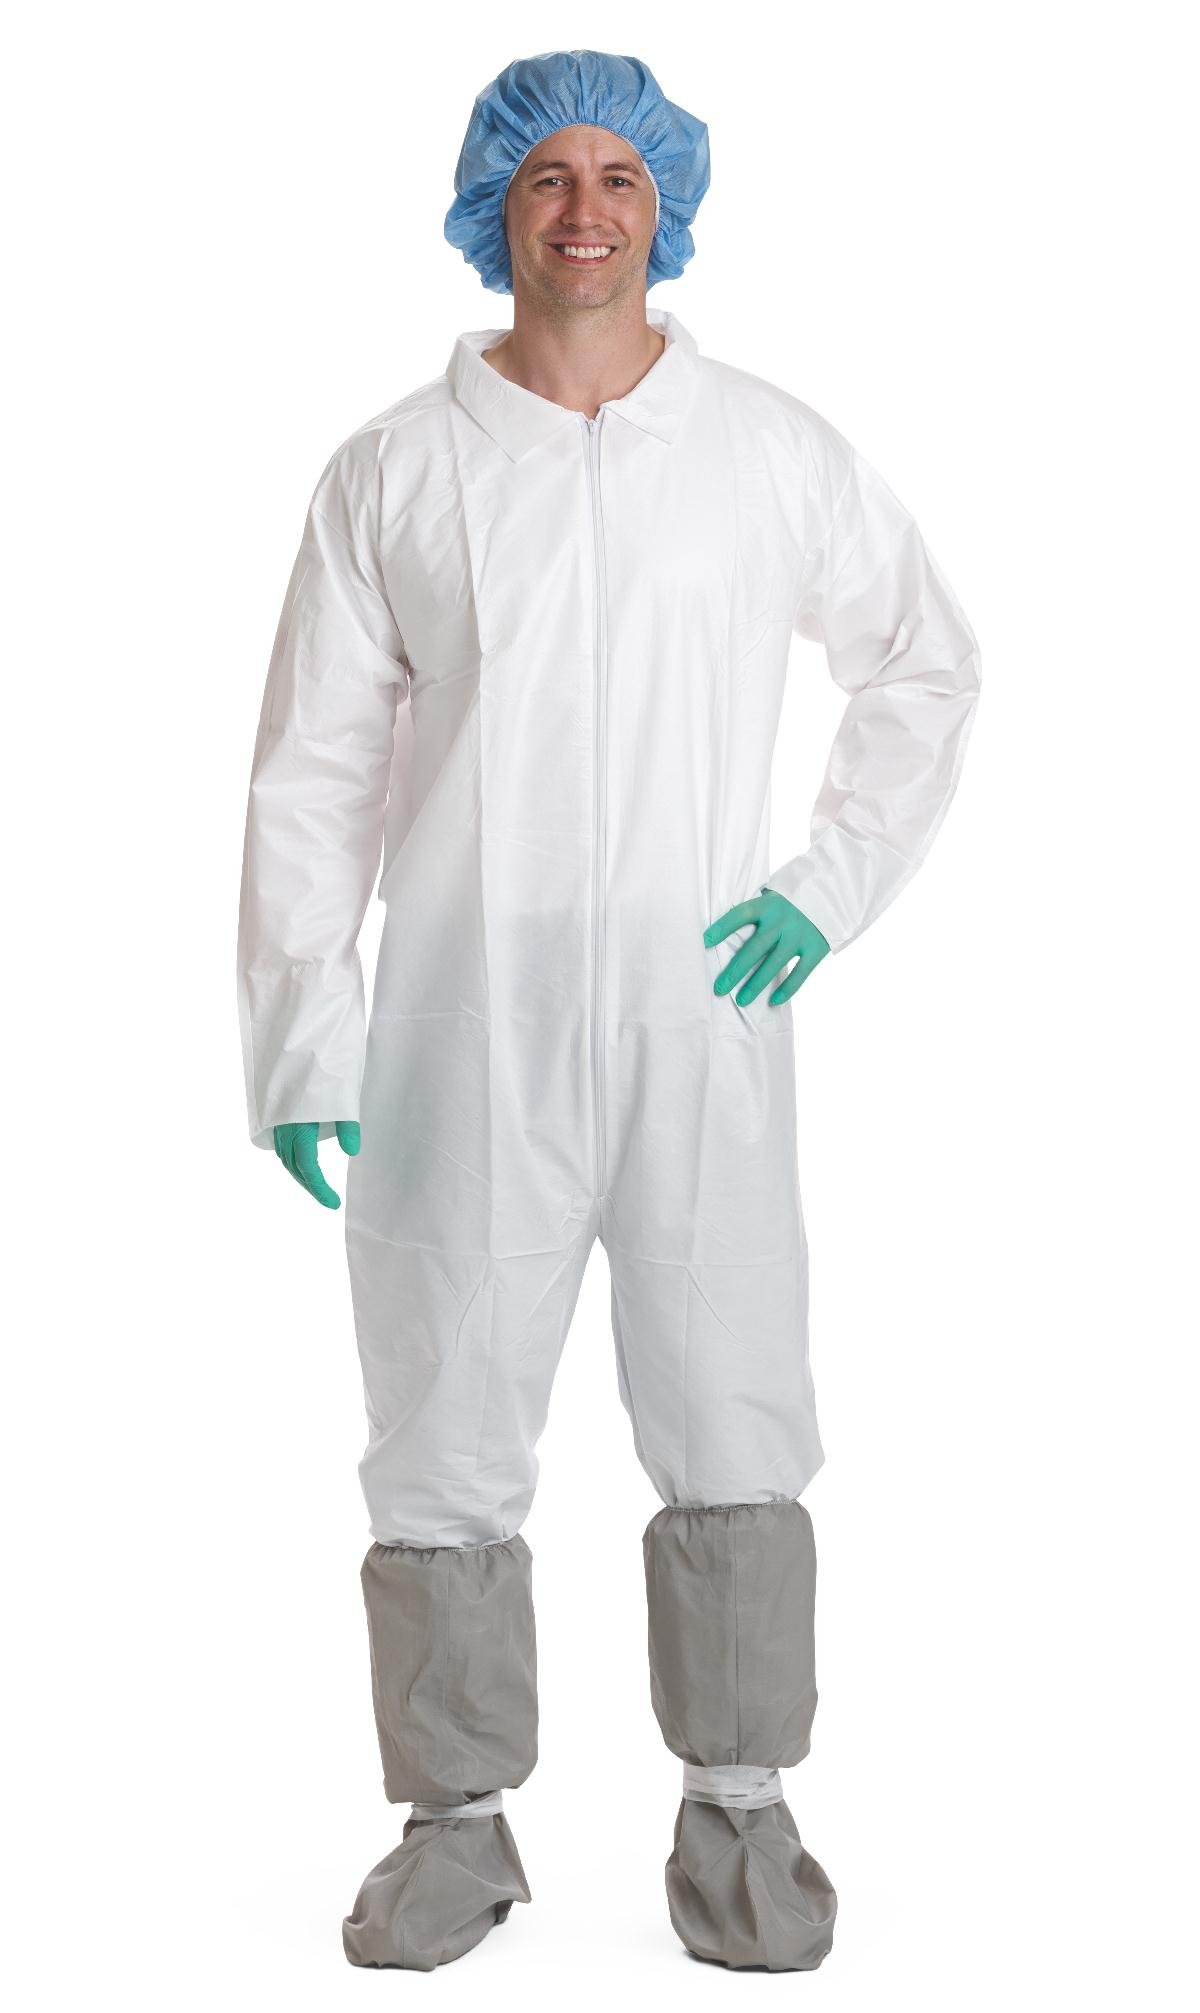 Medline NONCV920L Static-Dissipative Microporous Breathable Coveralls, Latex Free, Large, White (Pack of 25)